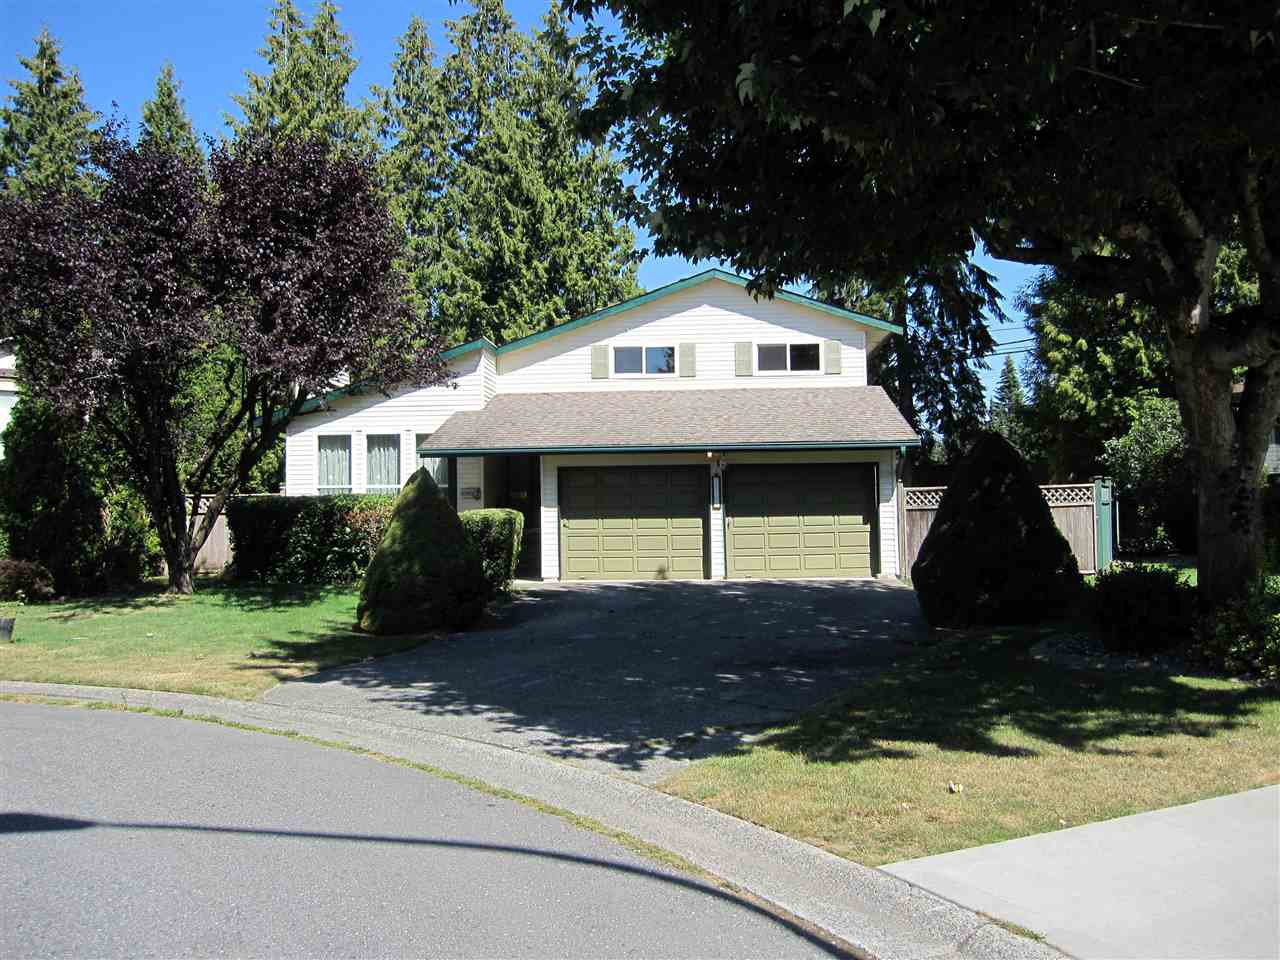 Main Photo: 21155 CUTLER Place in Maple Ridge: Southwest Maple Ridge House for sale : MLS®# R2101980